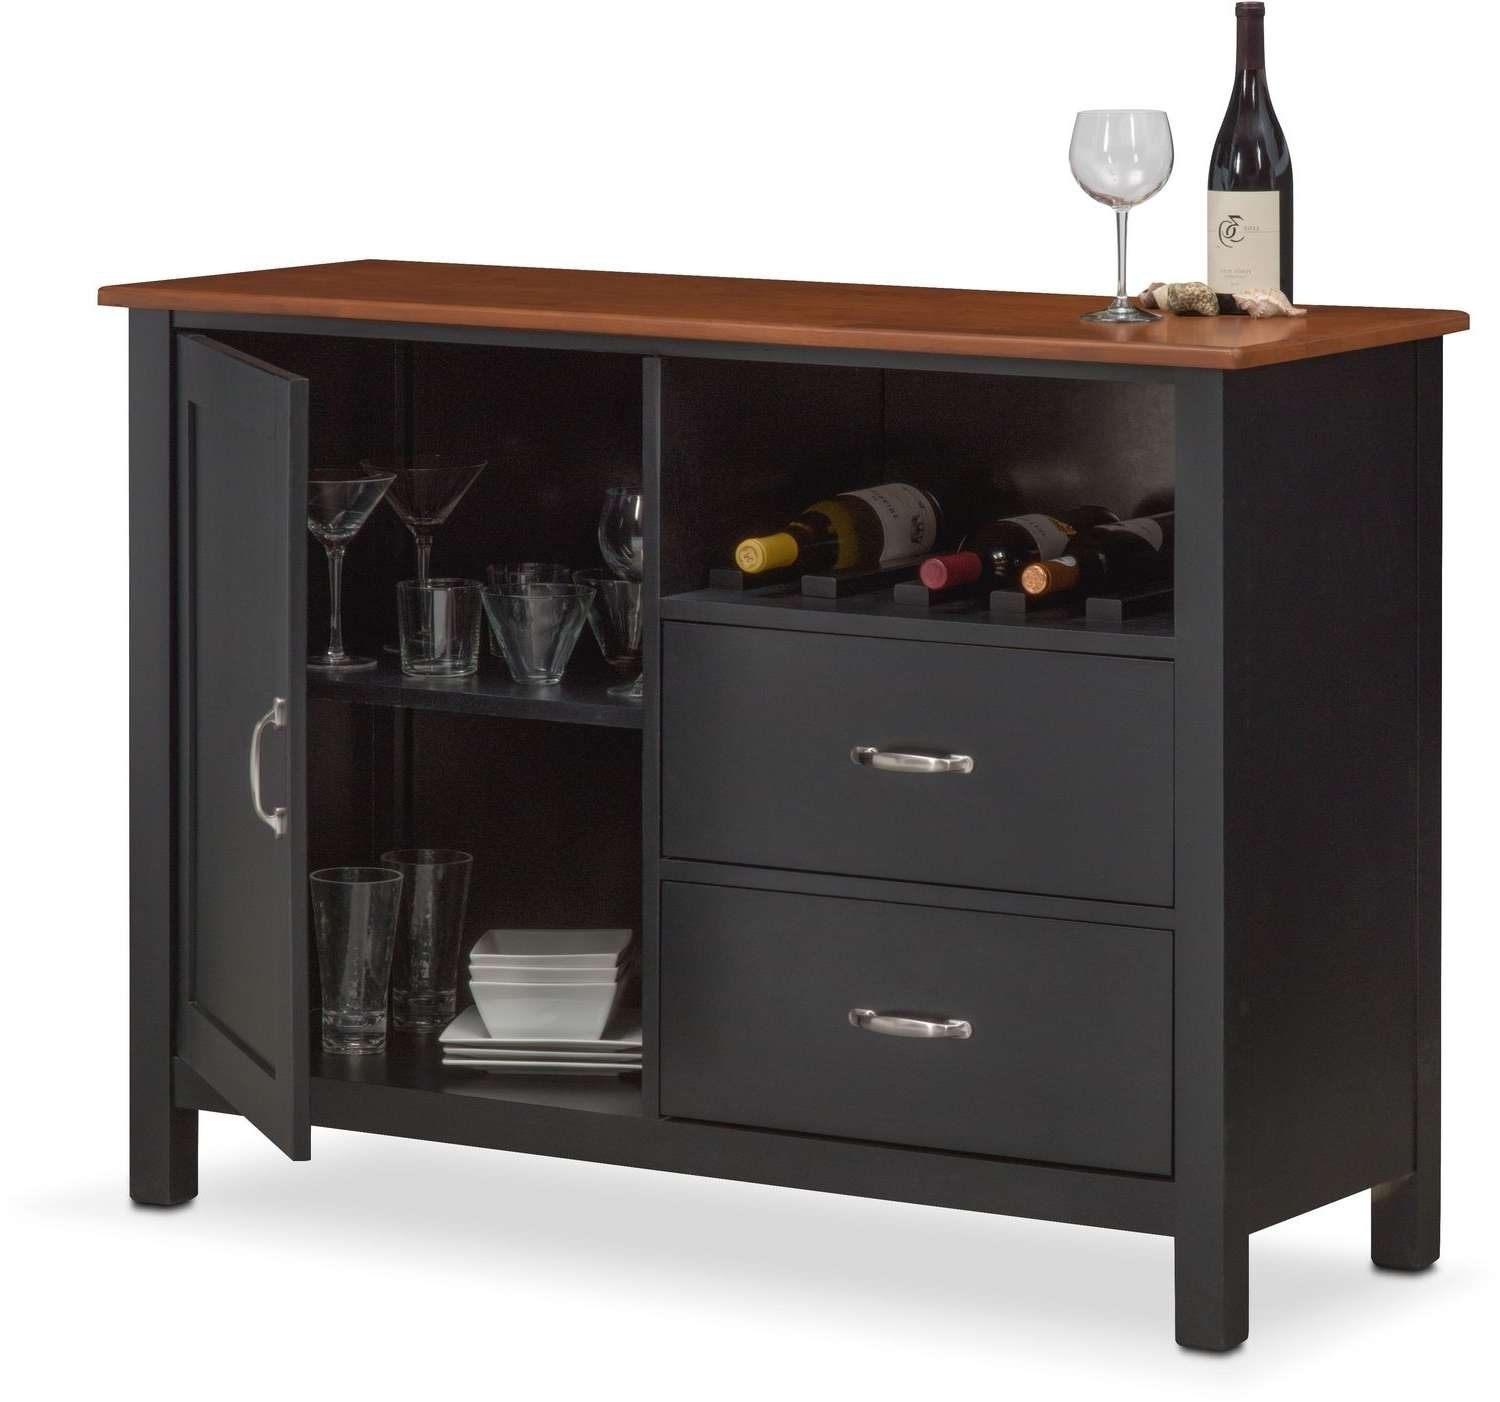 Buffet & Sideboard Cabinets | Value City Furniture And Mattresses With Regard To Furniture Sideboards (View 1 of 20)